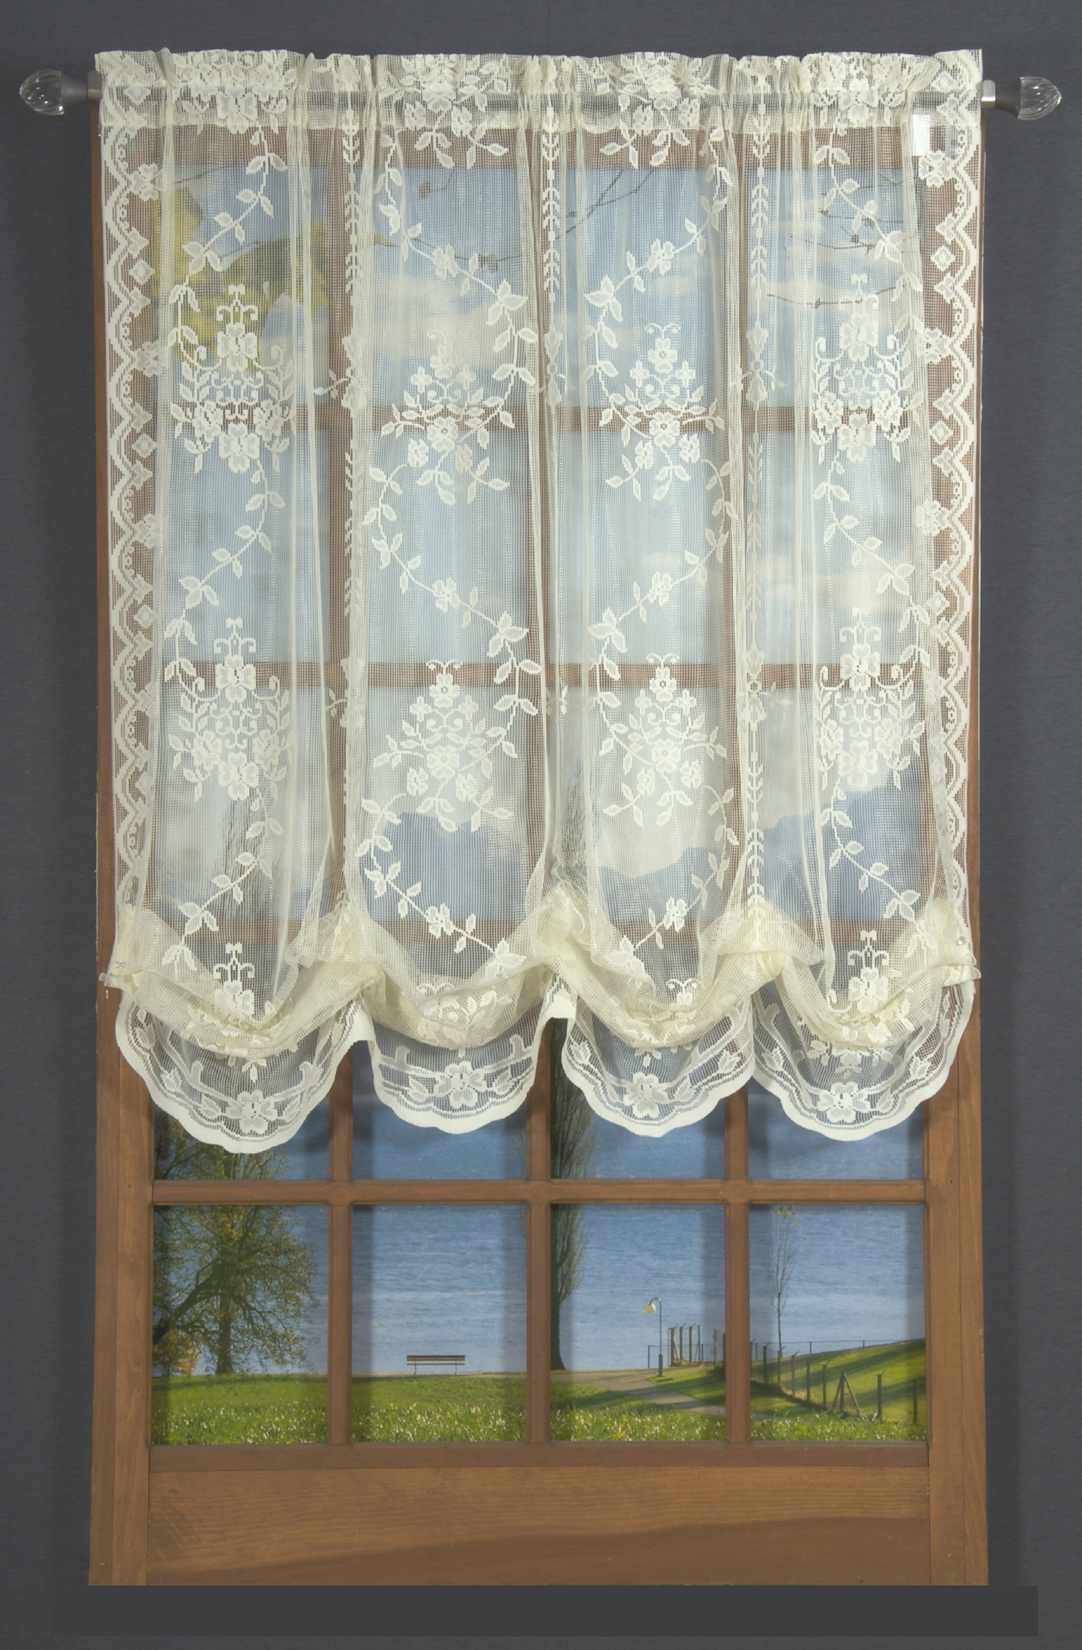 decoration living and tier french curtain kitchen ideas room curtains lace door drapes valances window